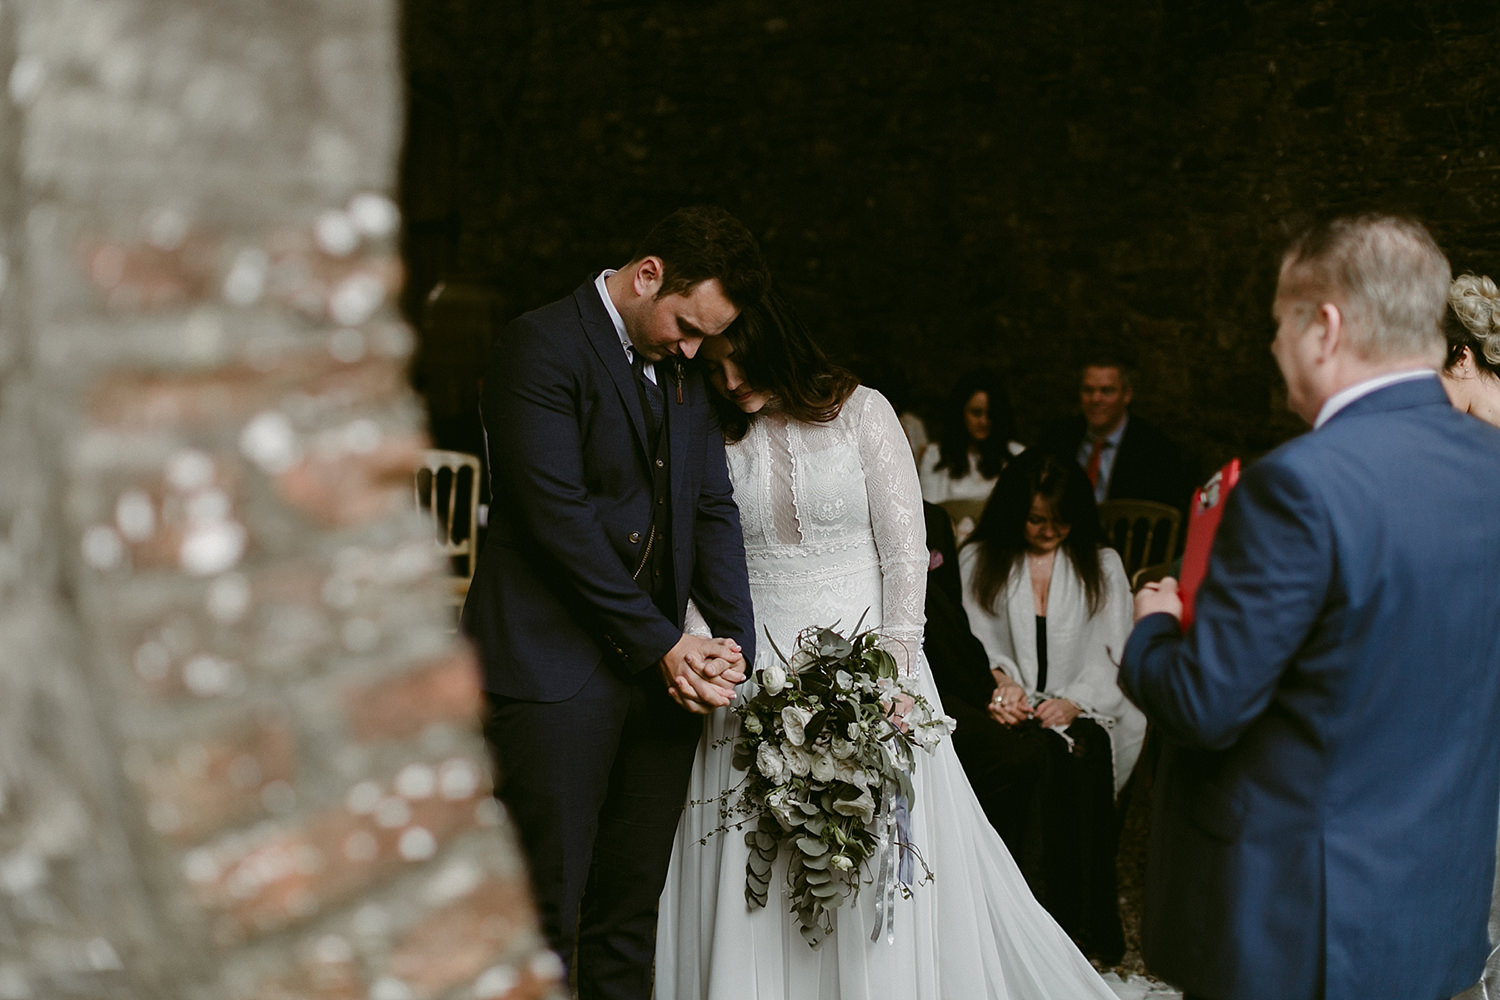 Northern Ireland Wedding Photographers Adam & Grace 5154